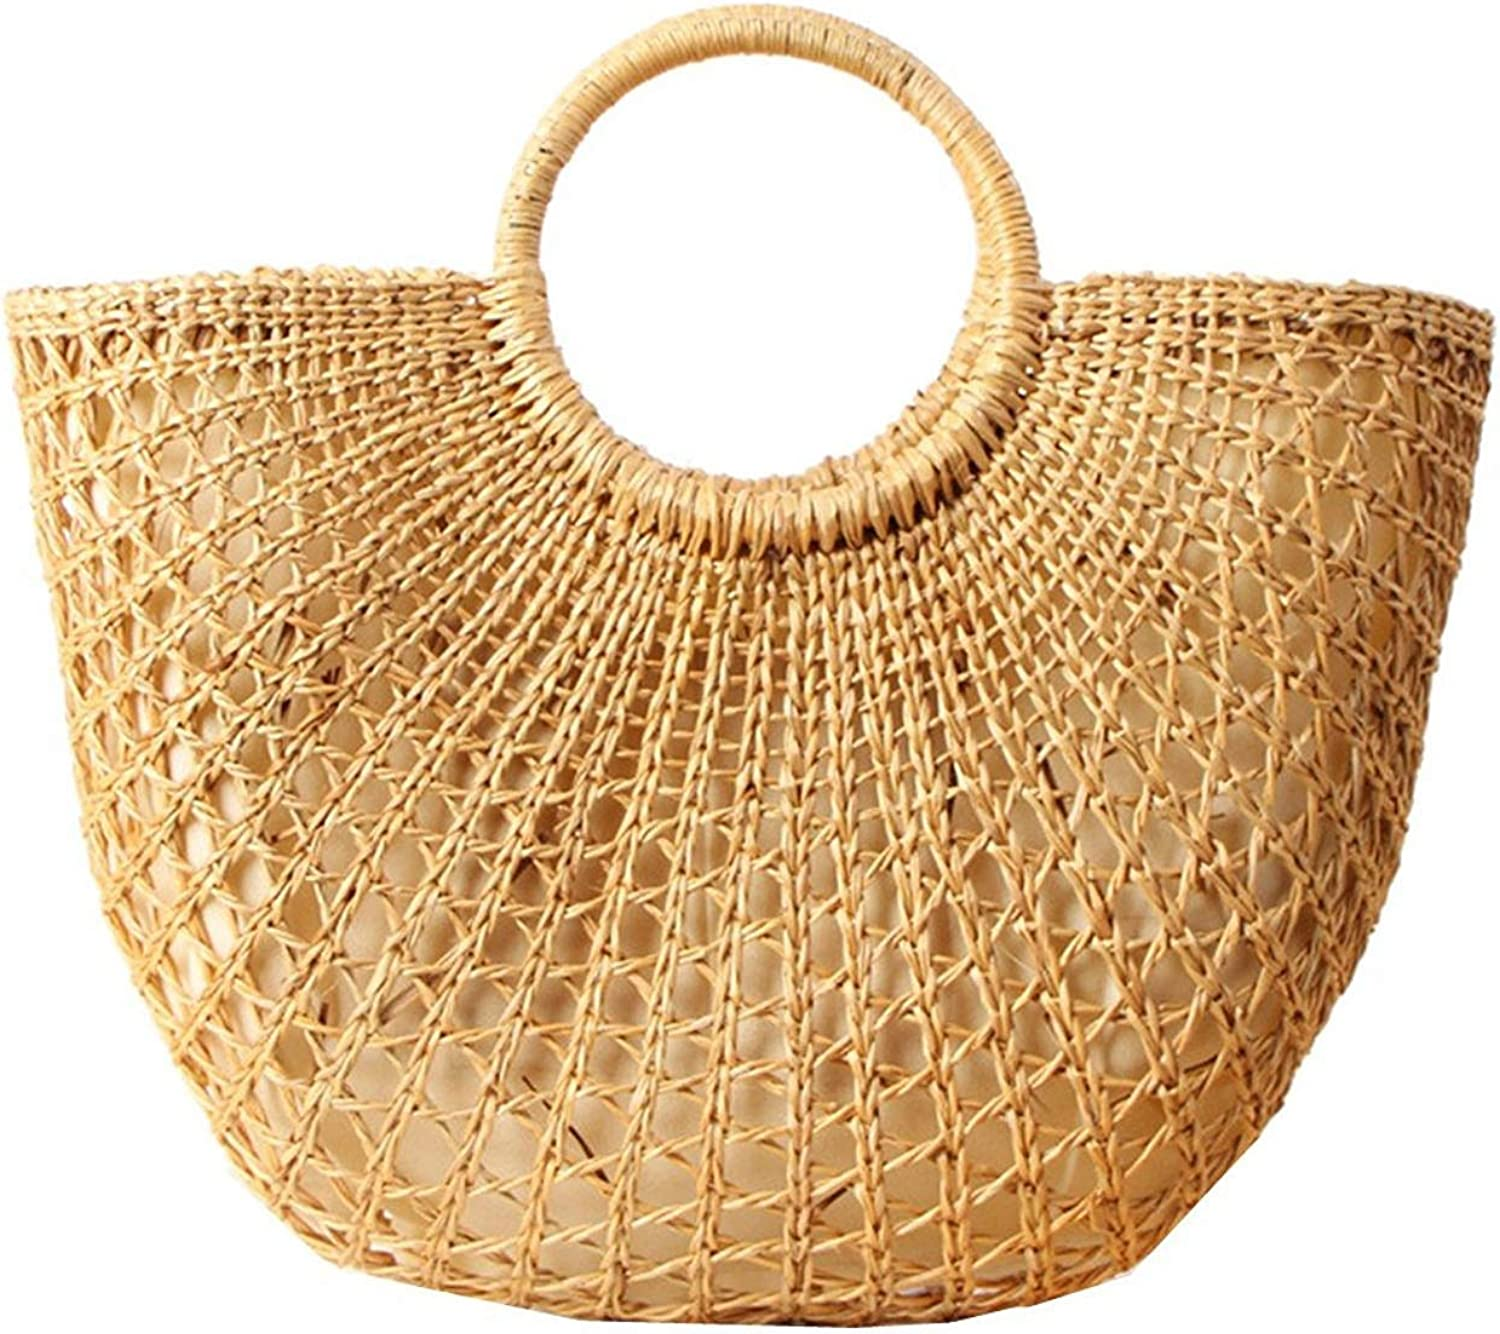 Jessieco Womens Vintage Straw Woven Handbags Casual Beach Large Tote Bags